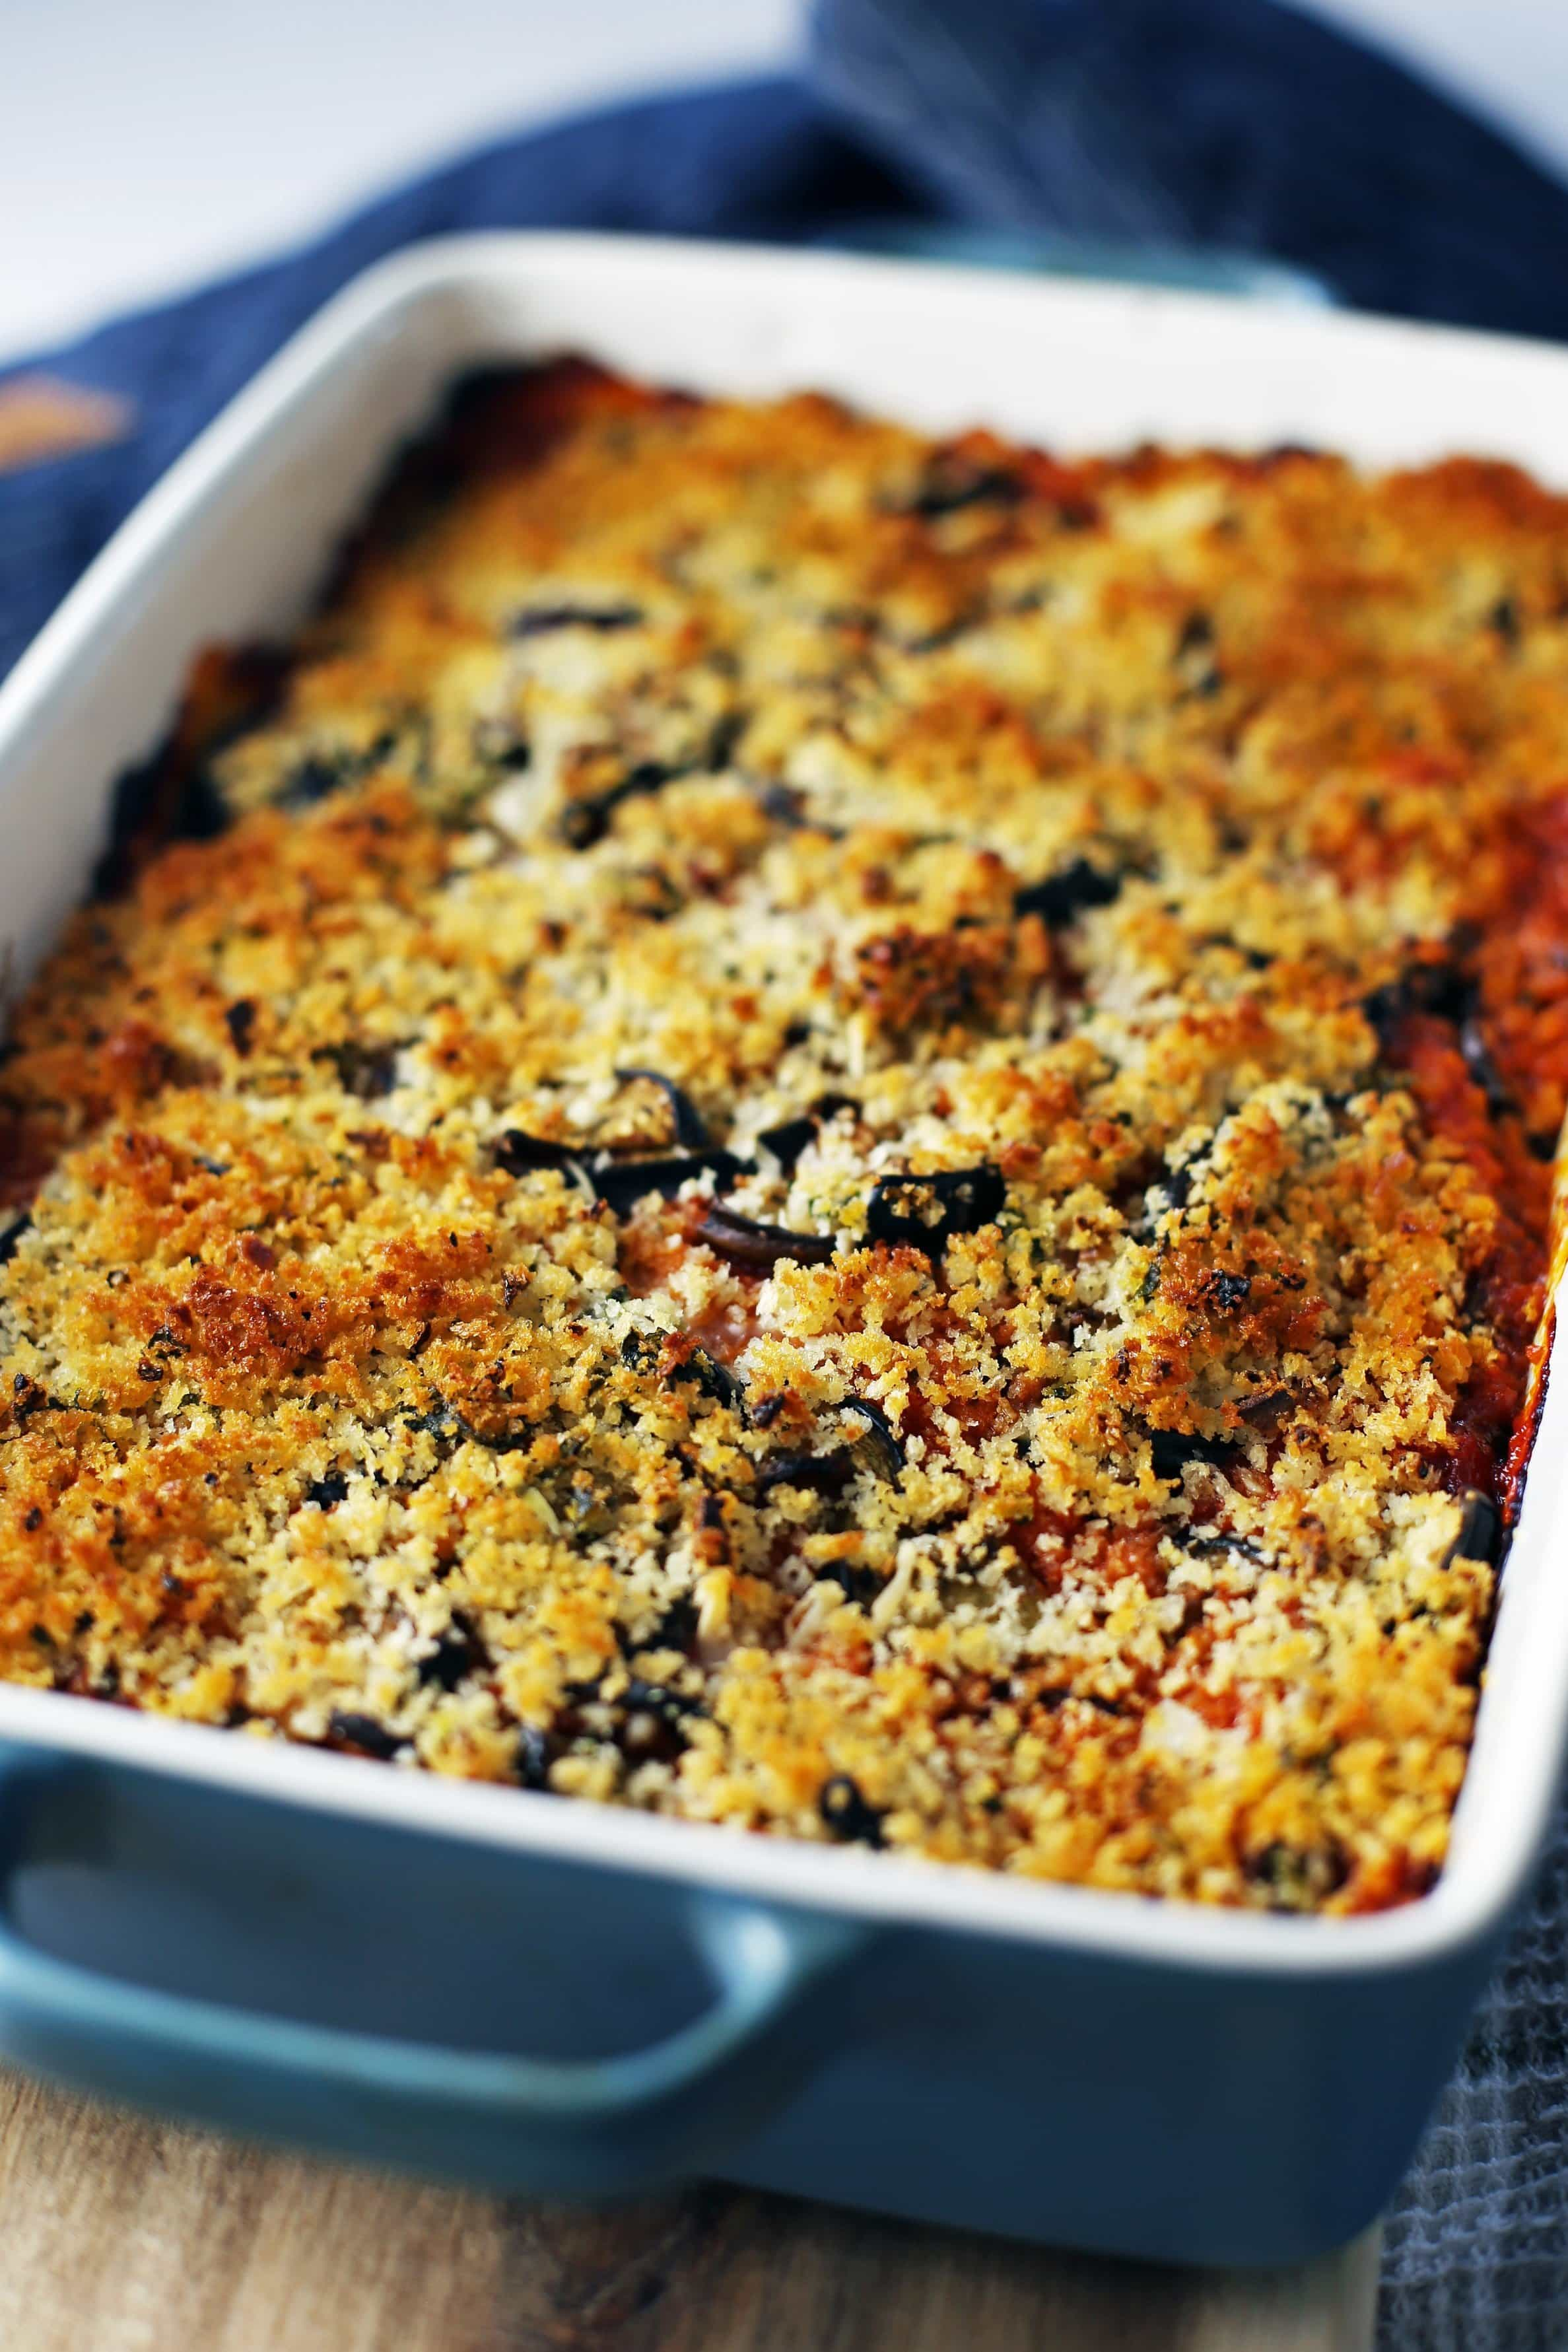 Baked Eggplant Parmesan Casserole with a golden-brown Panko breadcrumb topping in a large blue rectangular dish.